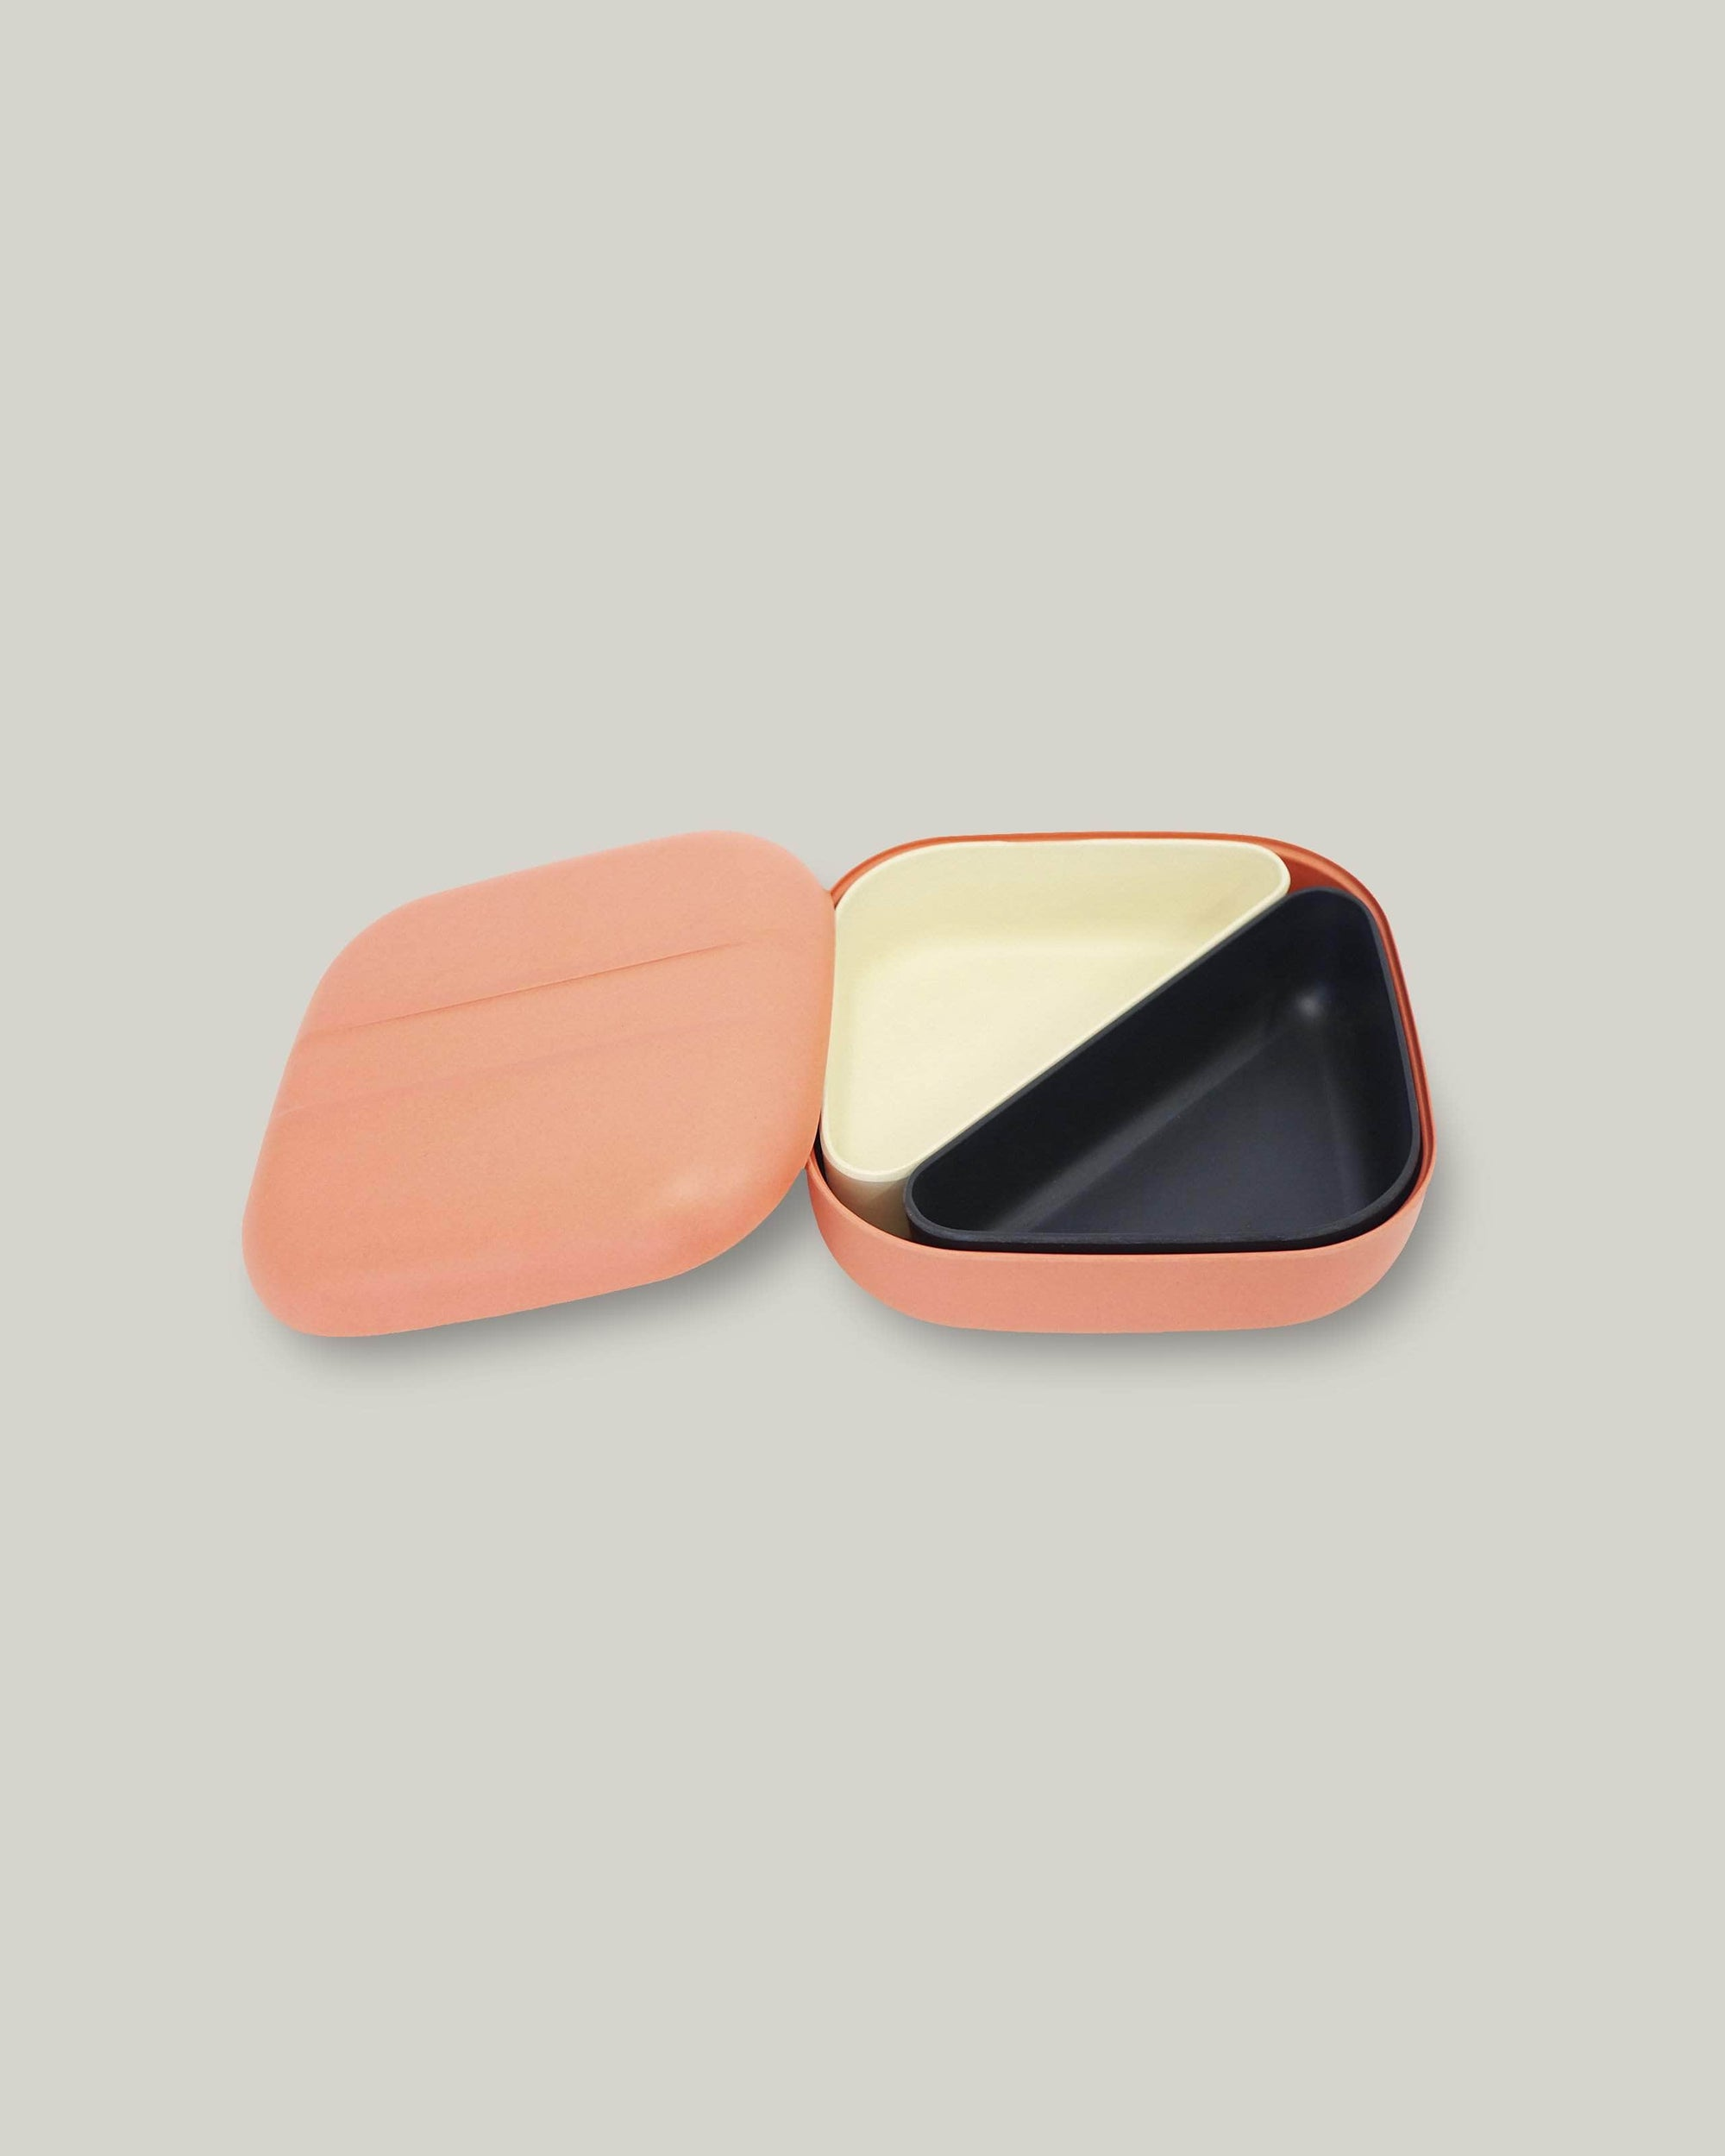 Bento Lunch Box - Coral